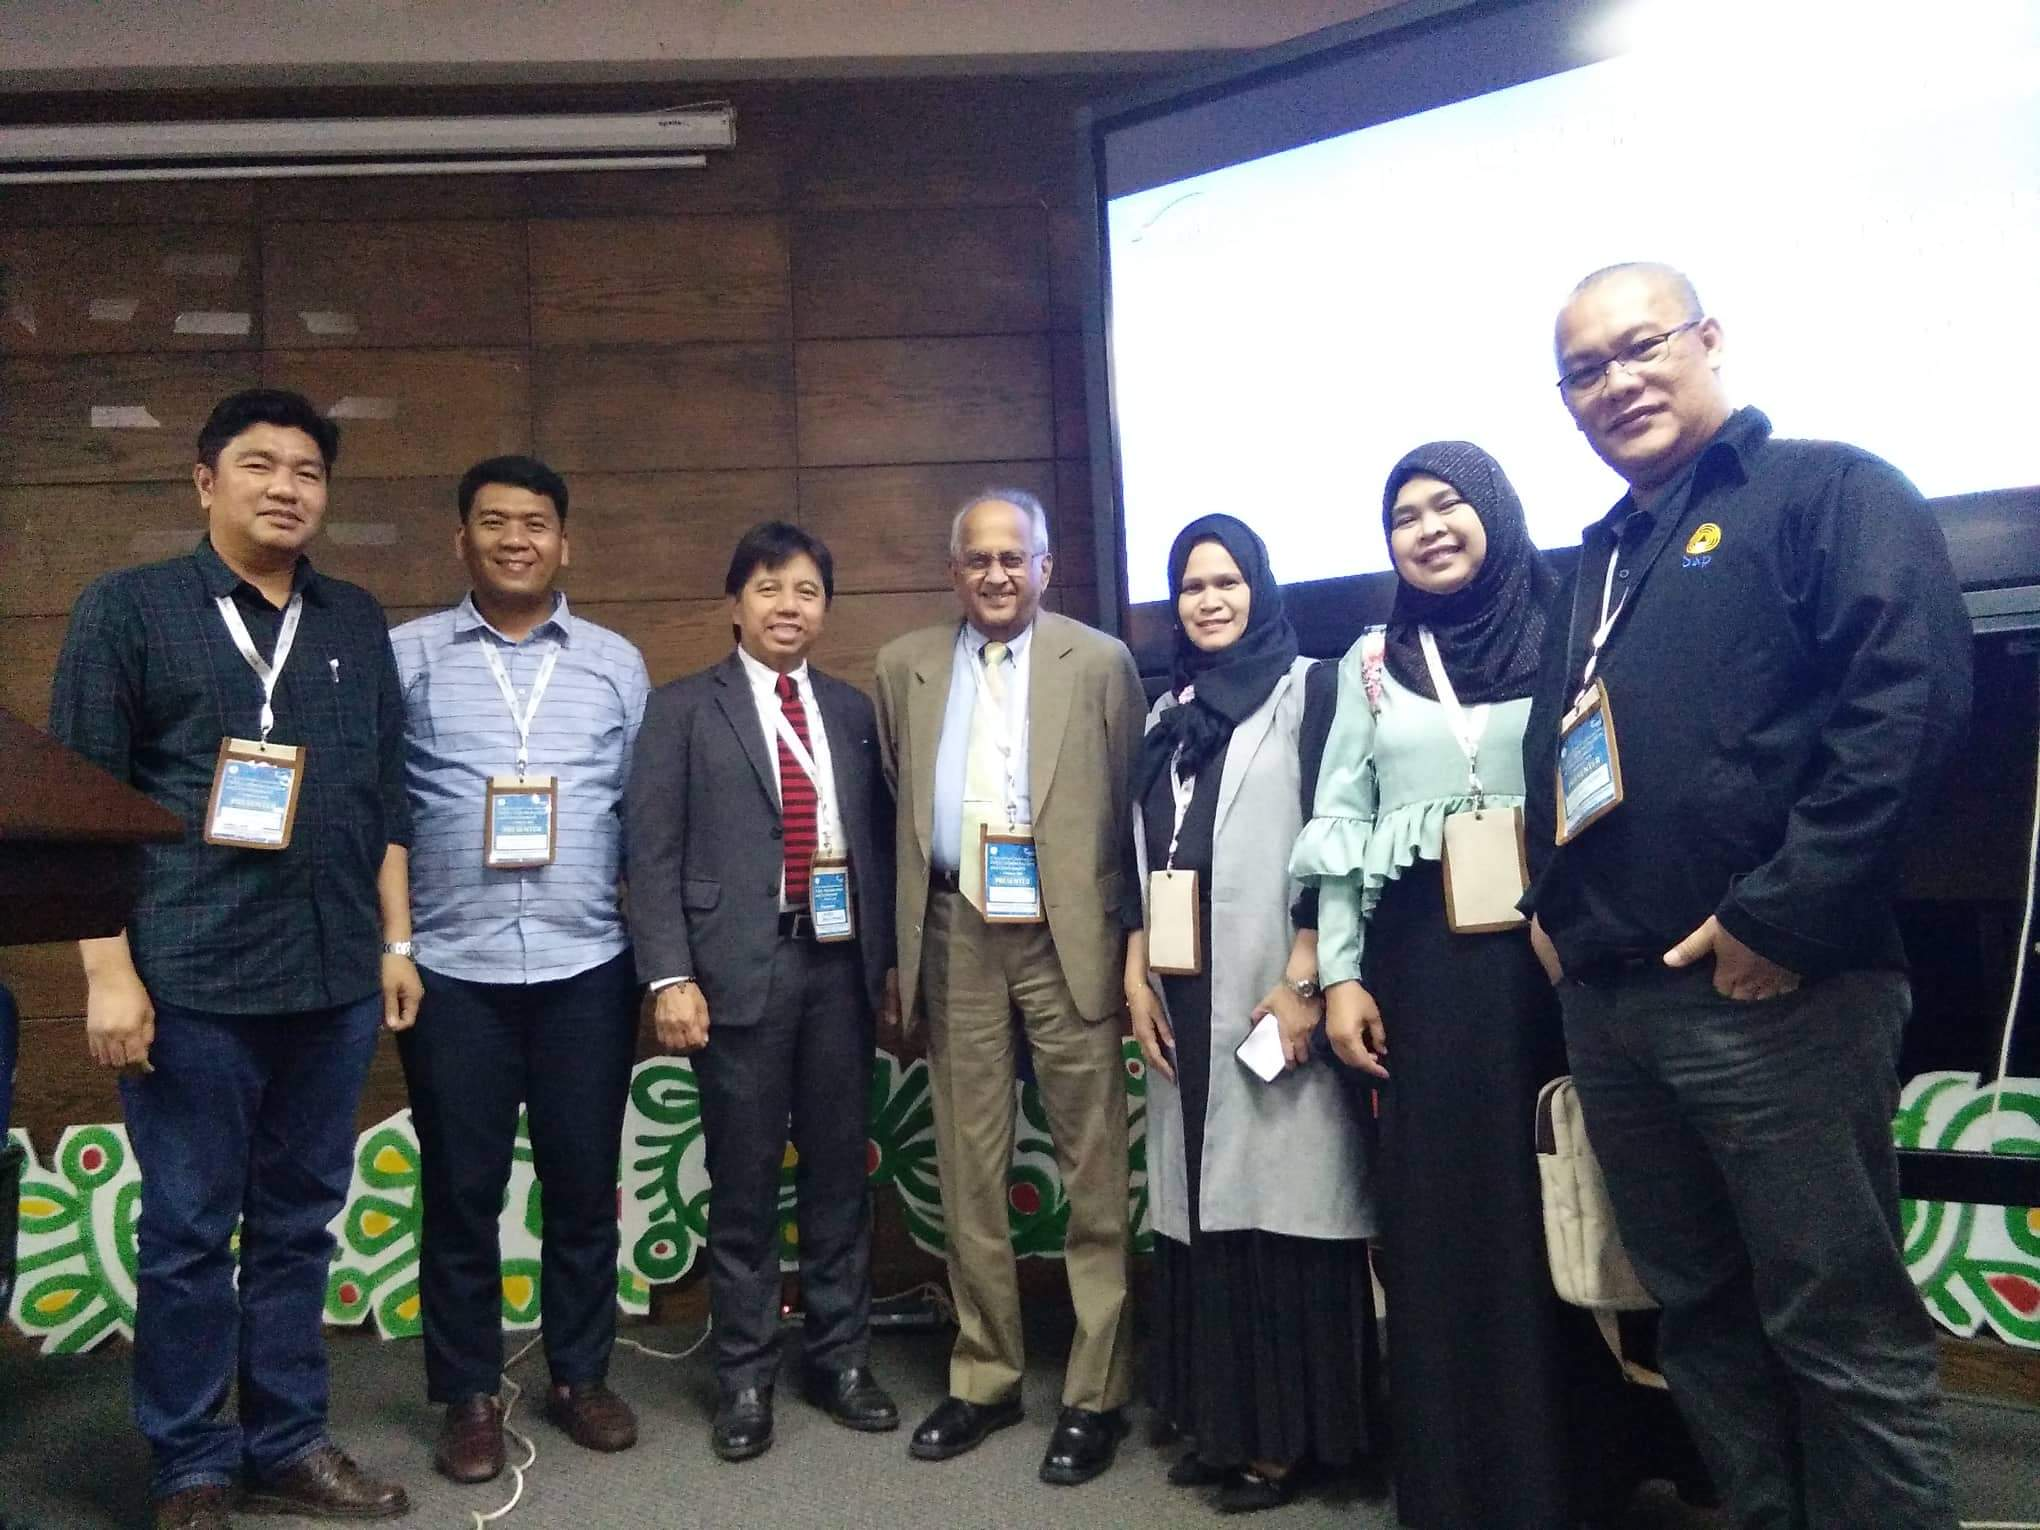 CCSPC Graduate Faculty Attends the 7th International Conference on Public Administration and Development